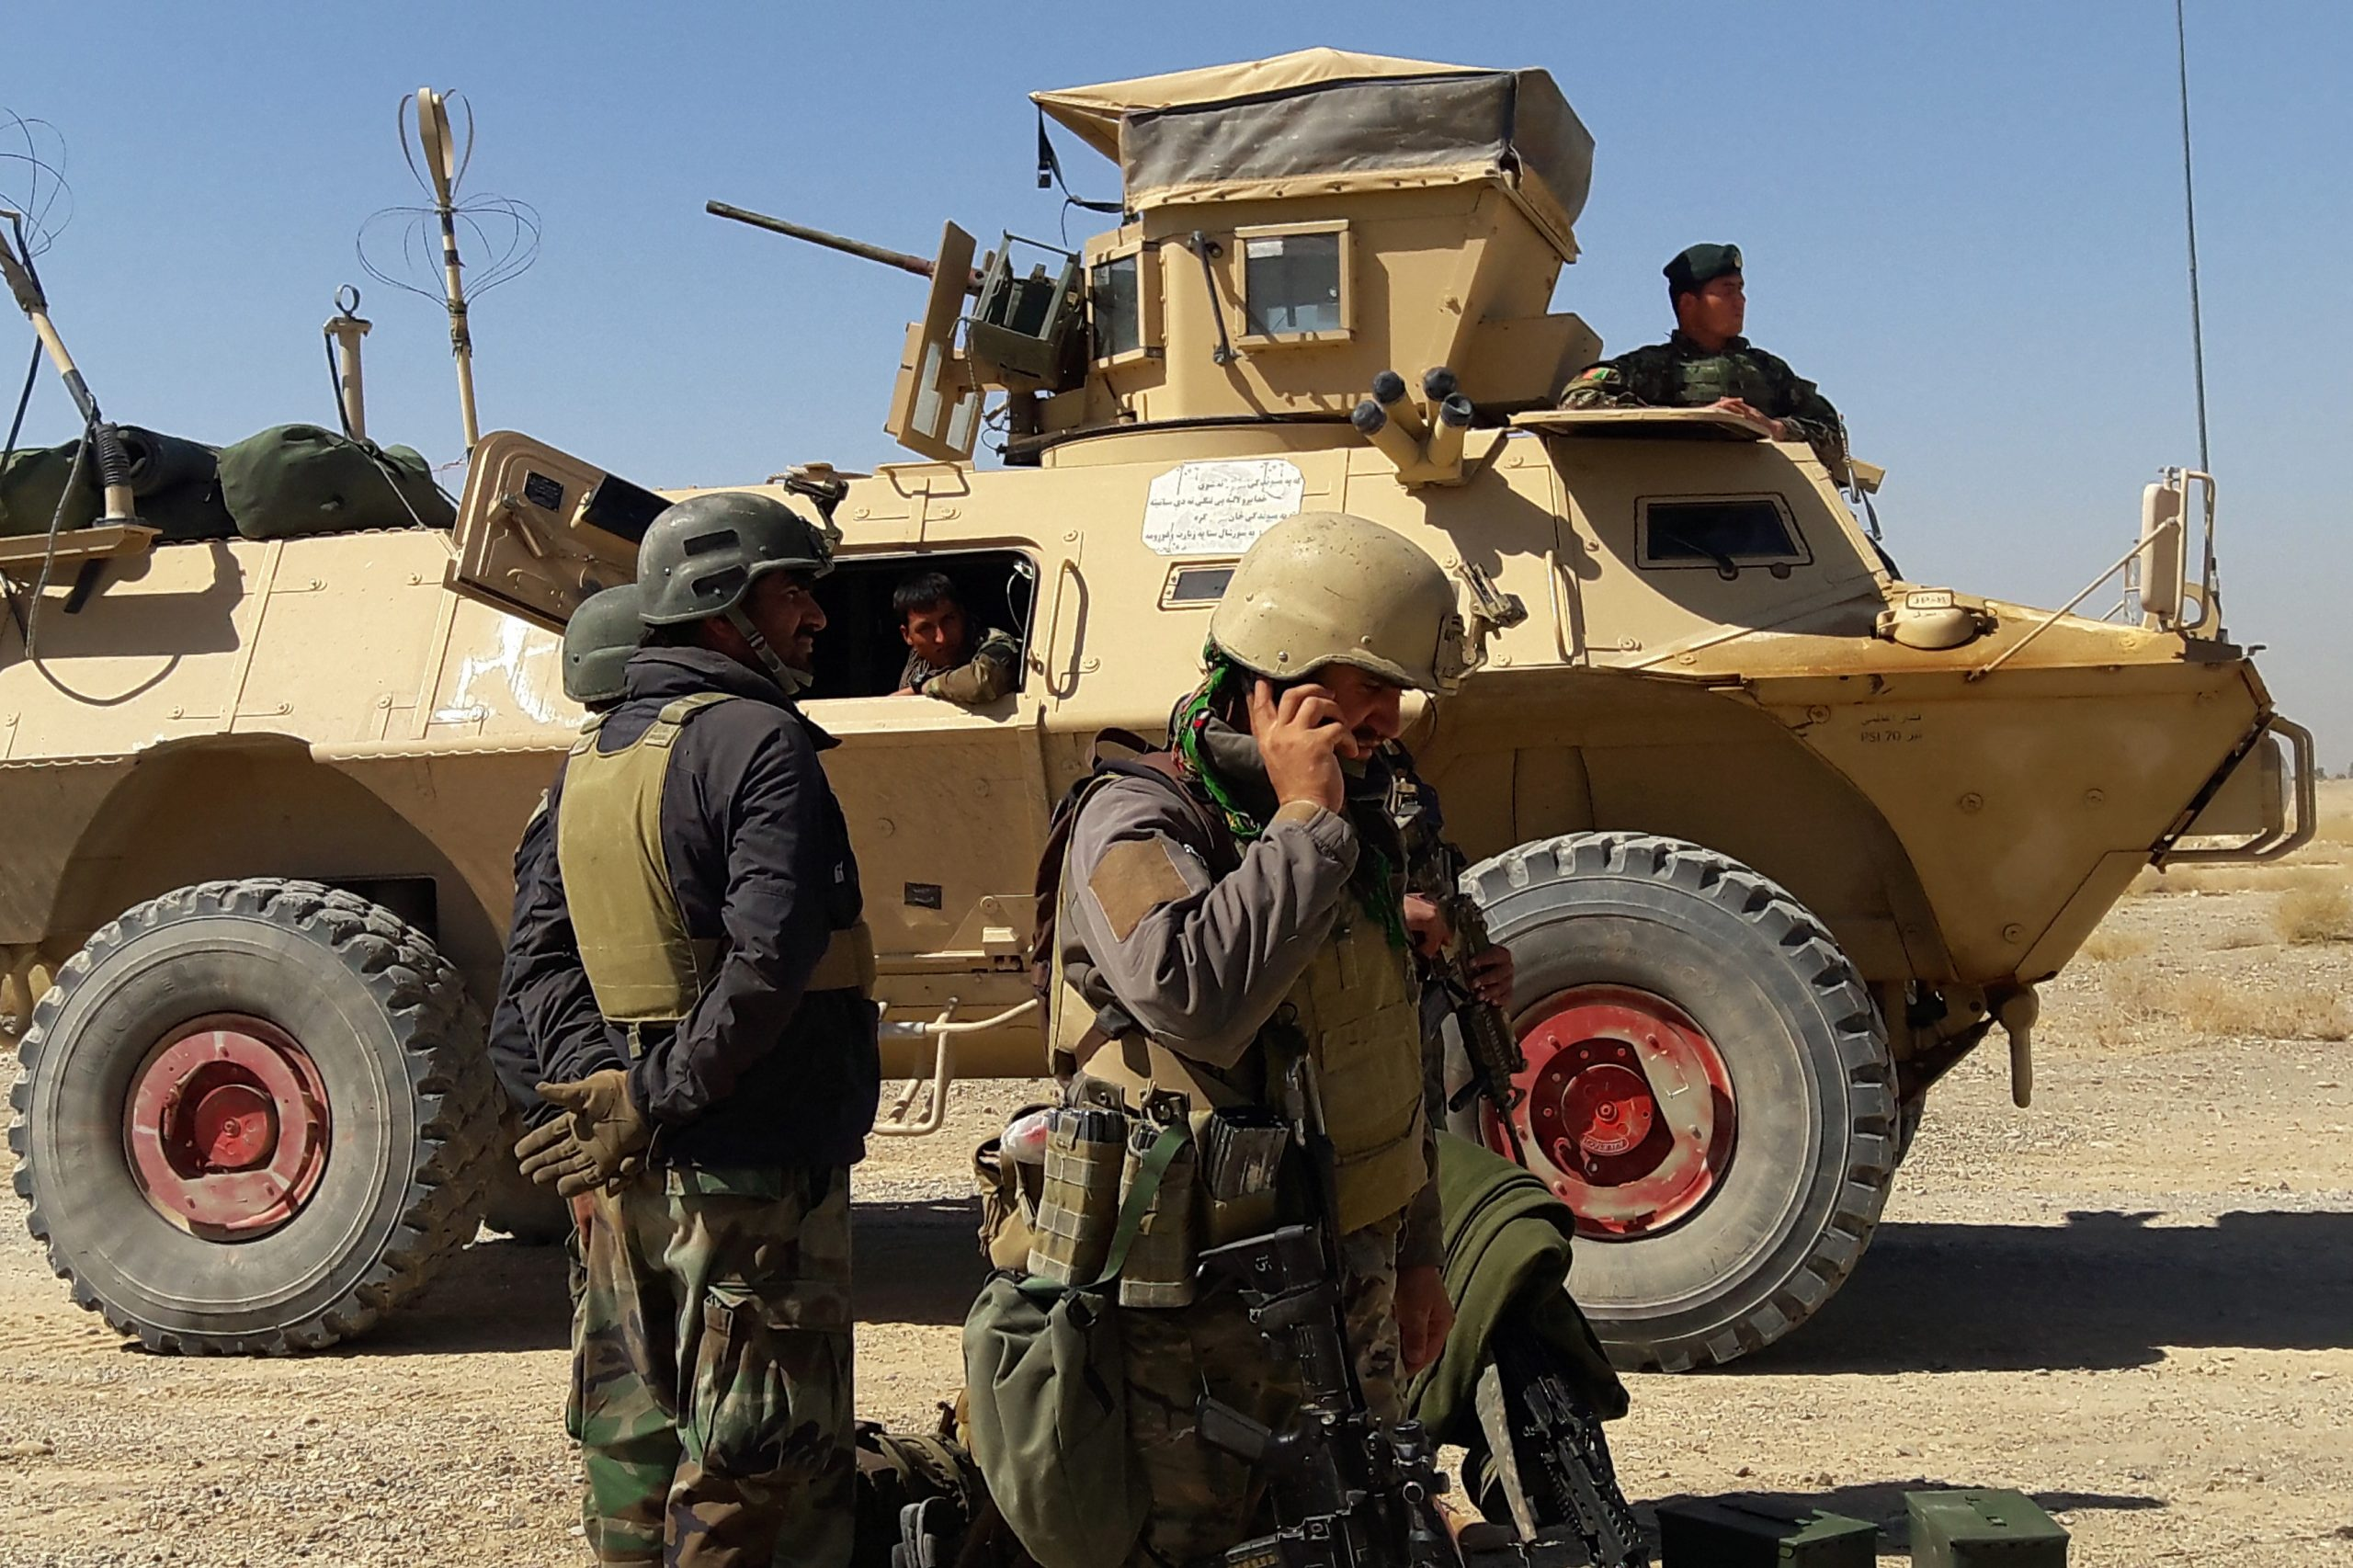 Taliban Seized U.S. Weapons In Afganistan, Could It Lead To Regional Arms Bazaar?